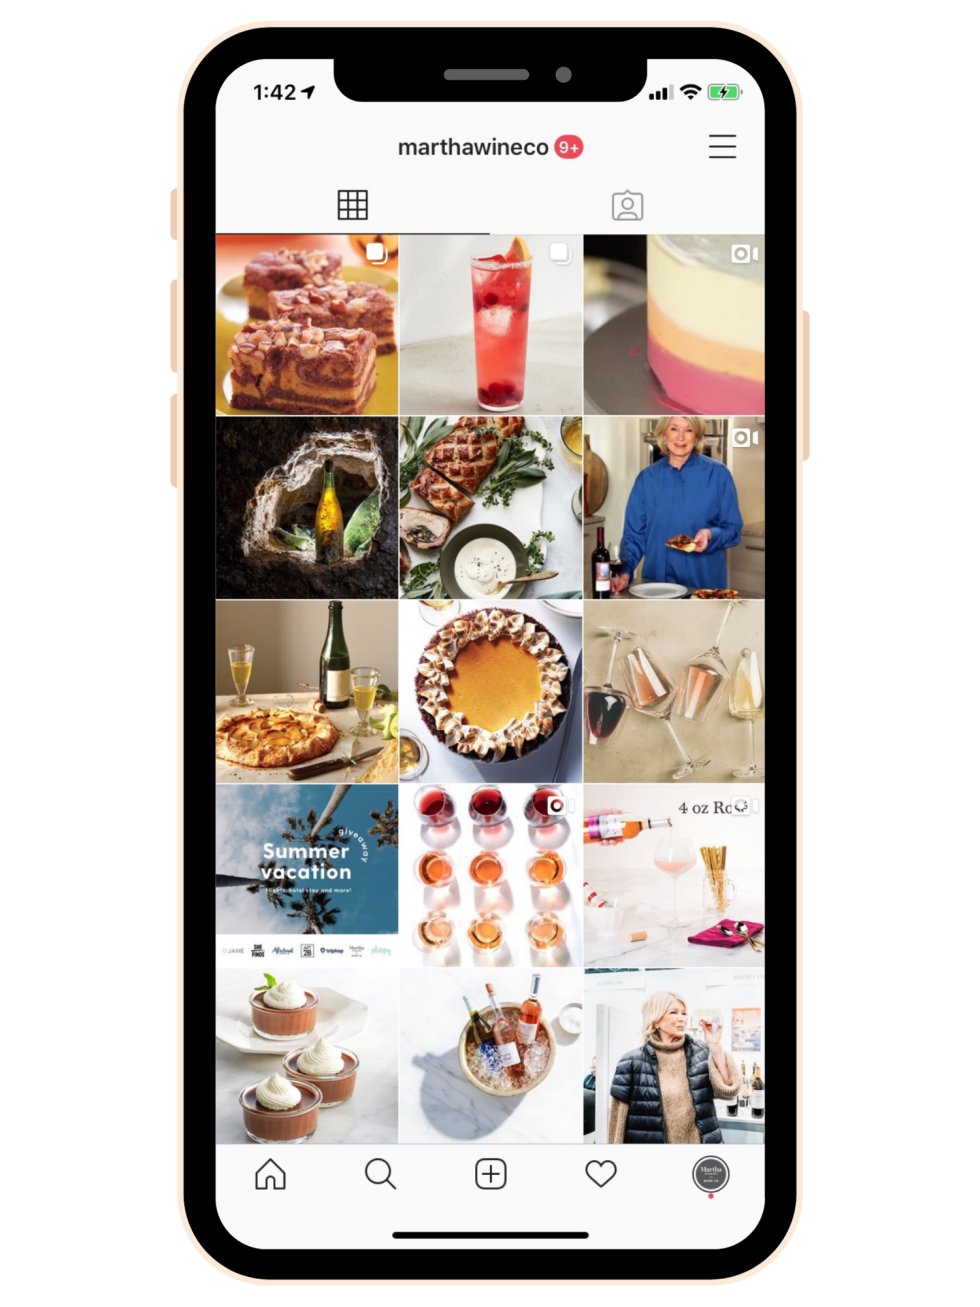 Mobile iPhone screenshot of Martha Stewart Wine Instagram page. Instagram photos include decorative photos of wine, cupcakes, Martha Stewart, and cocktails.